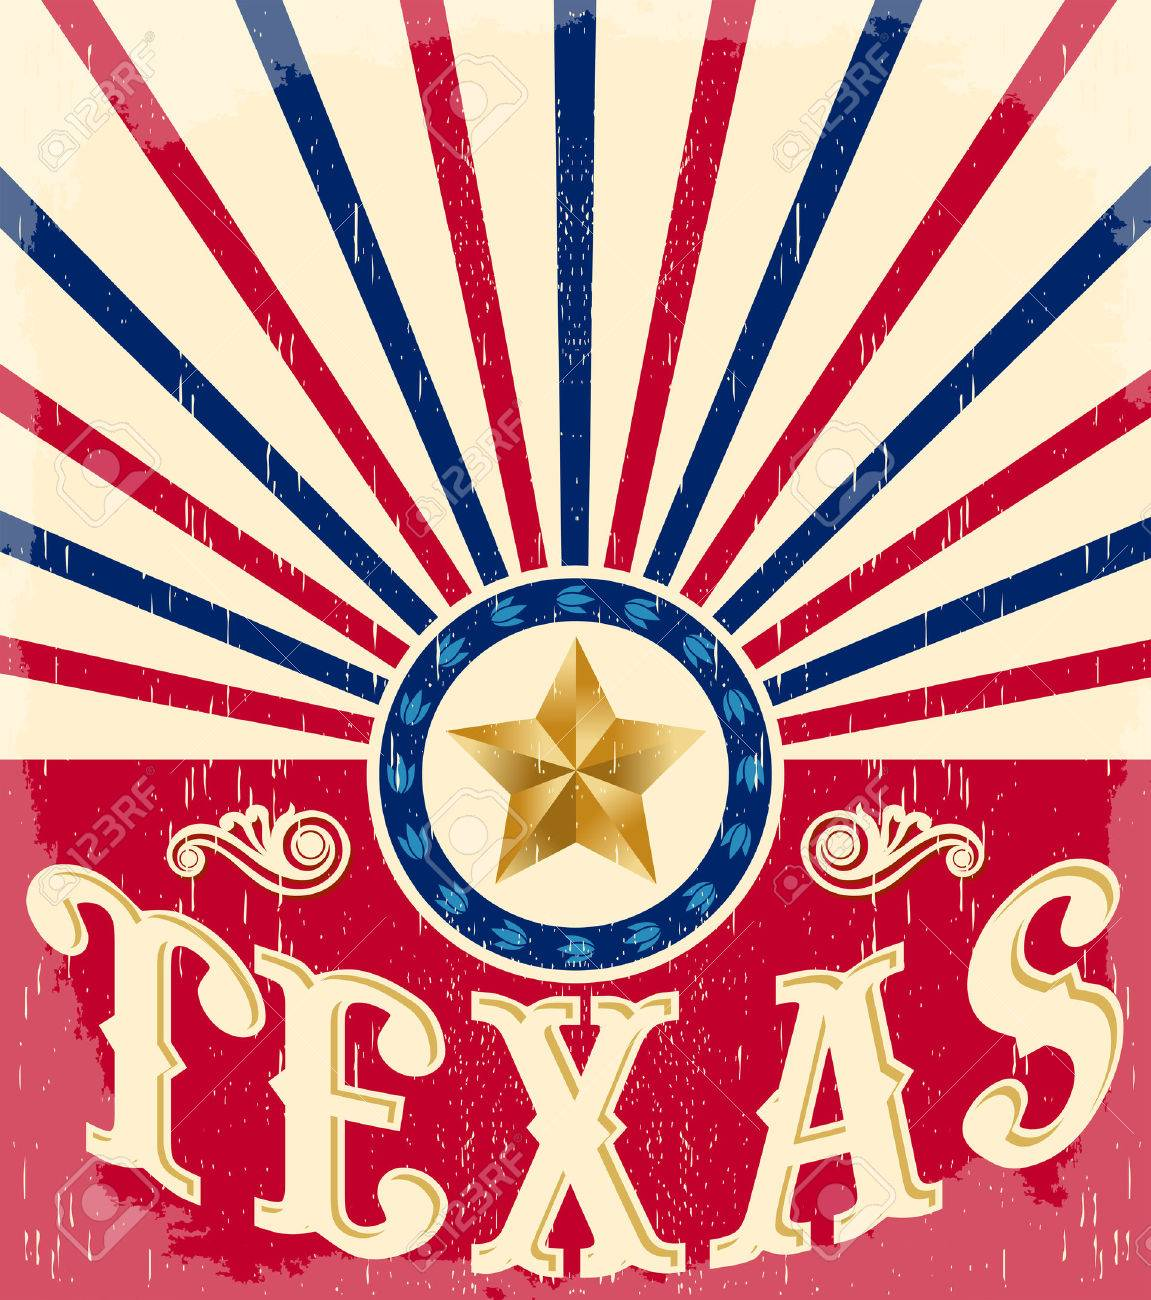 Texas Vintage poster - Card - western - cowboy style, Grunge effects can be easily removed - 42939608